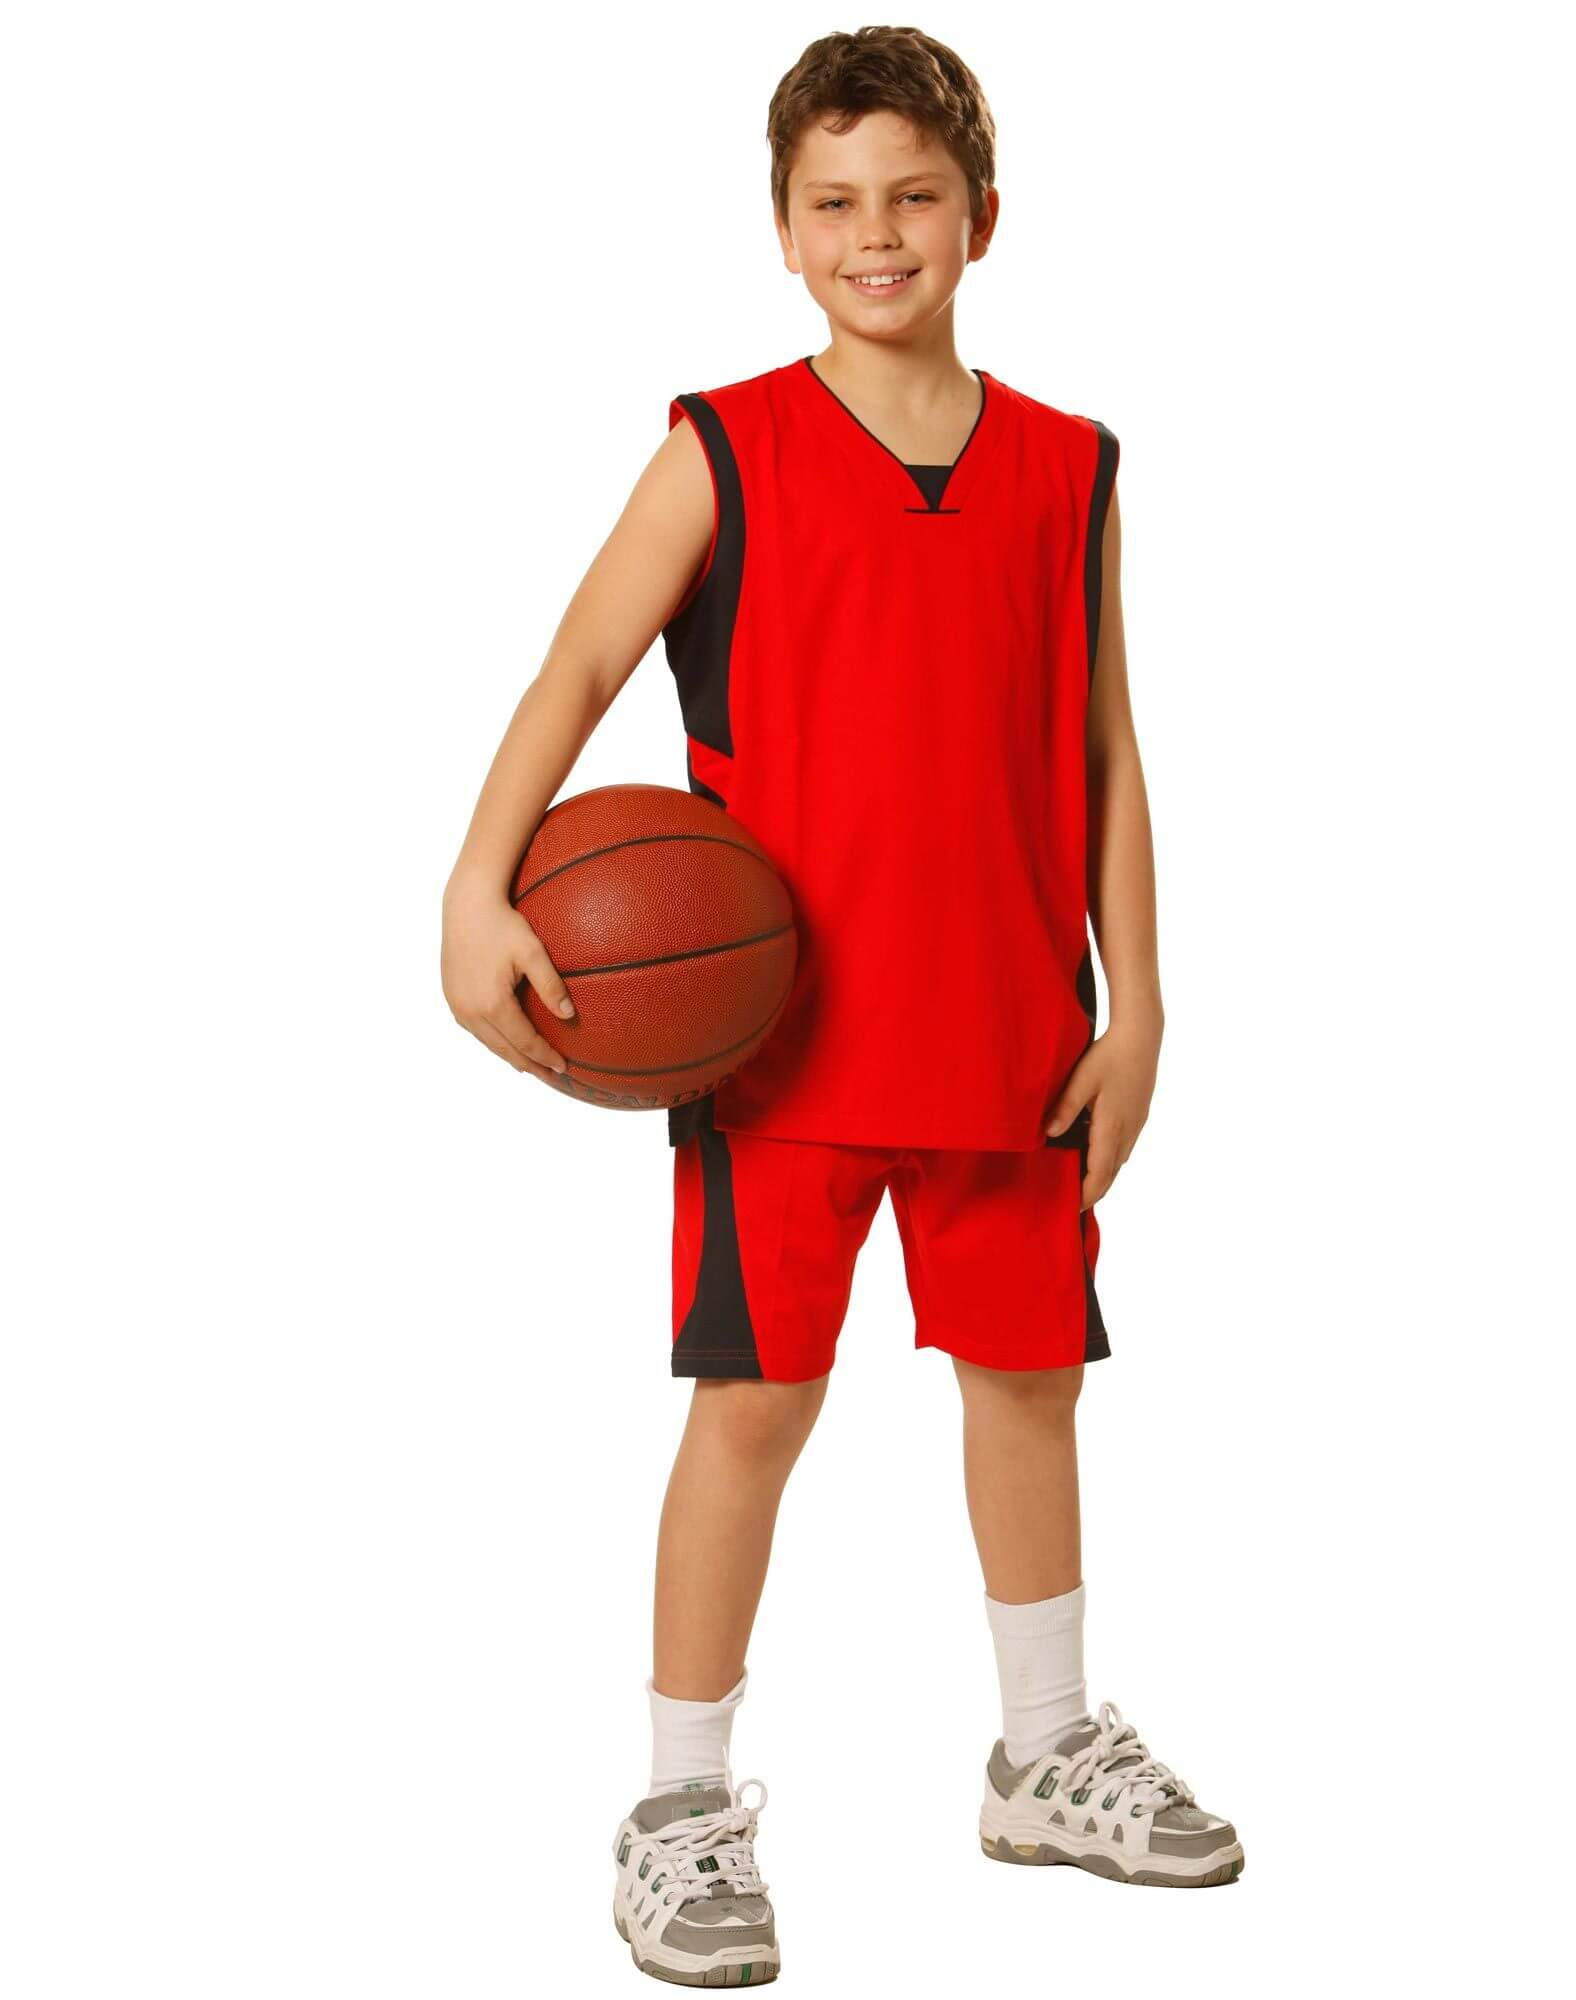 Kids Basketball Jerseys Manufacturers in Argentina